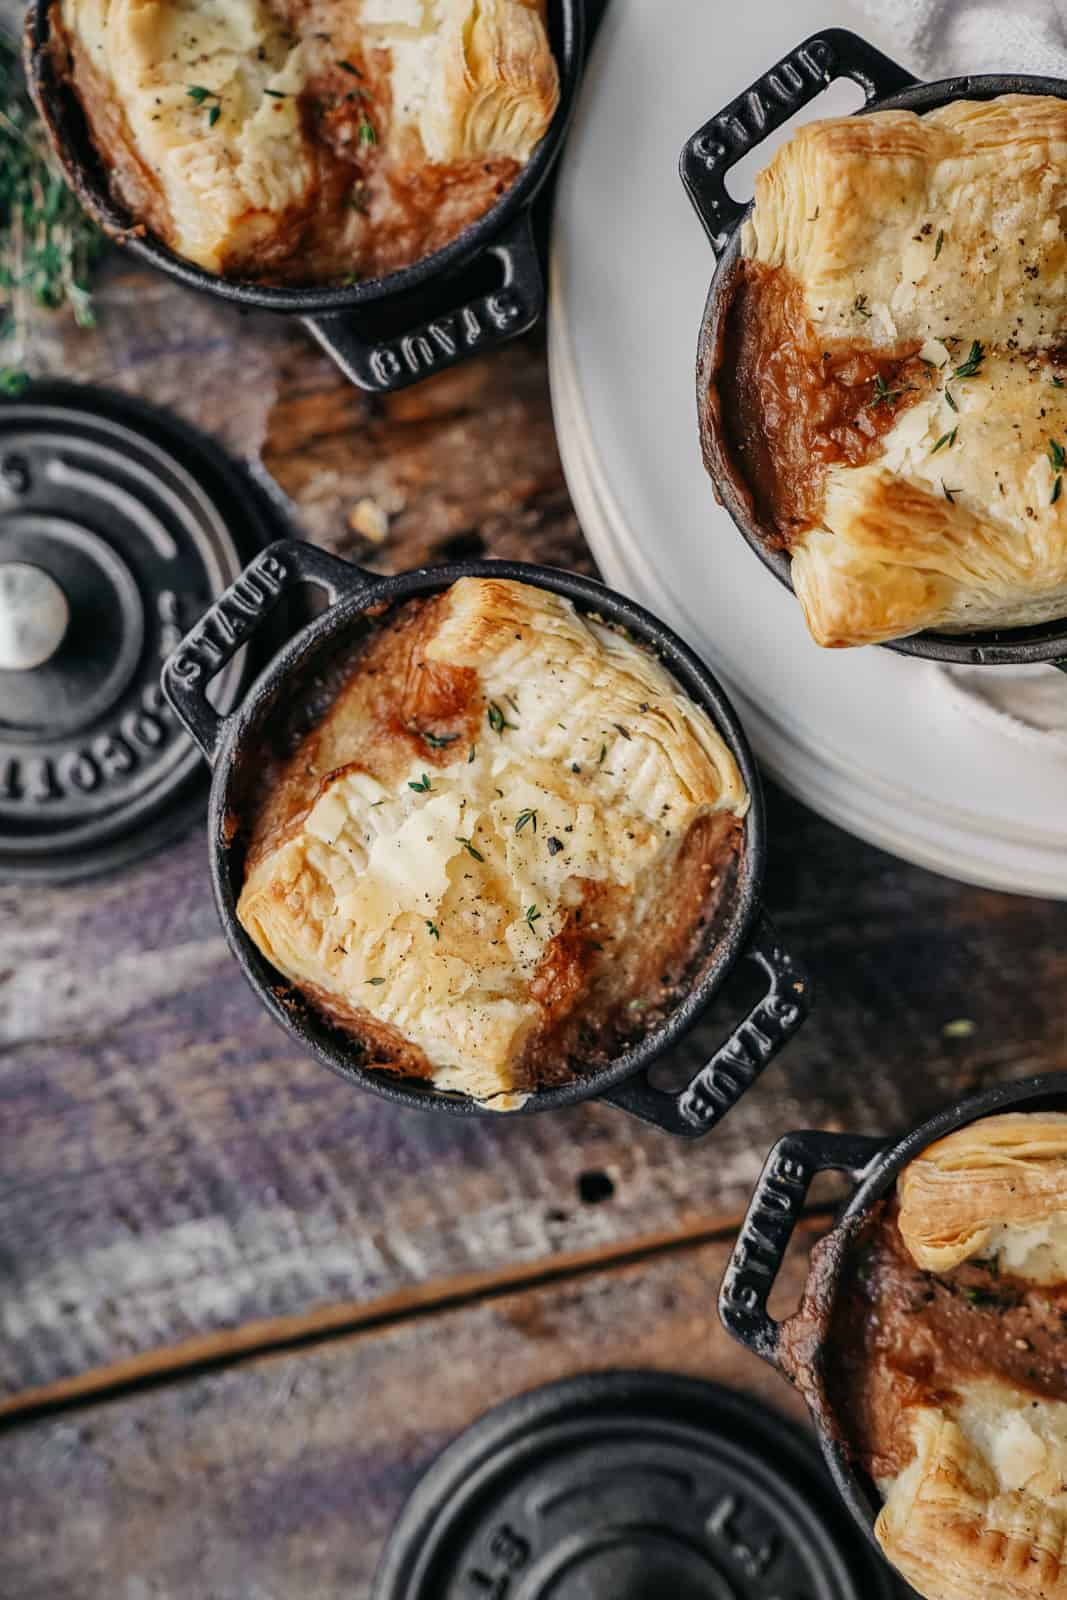 Ready-to-eat vegan pot pie with pastry crust in staub cocettes